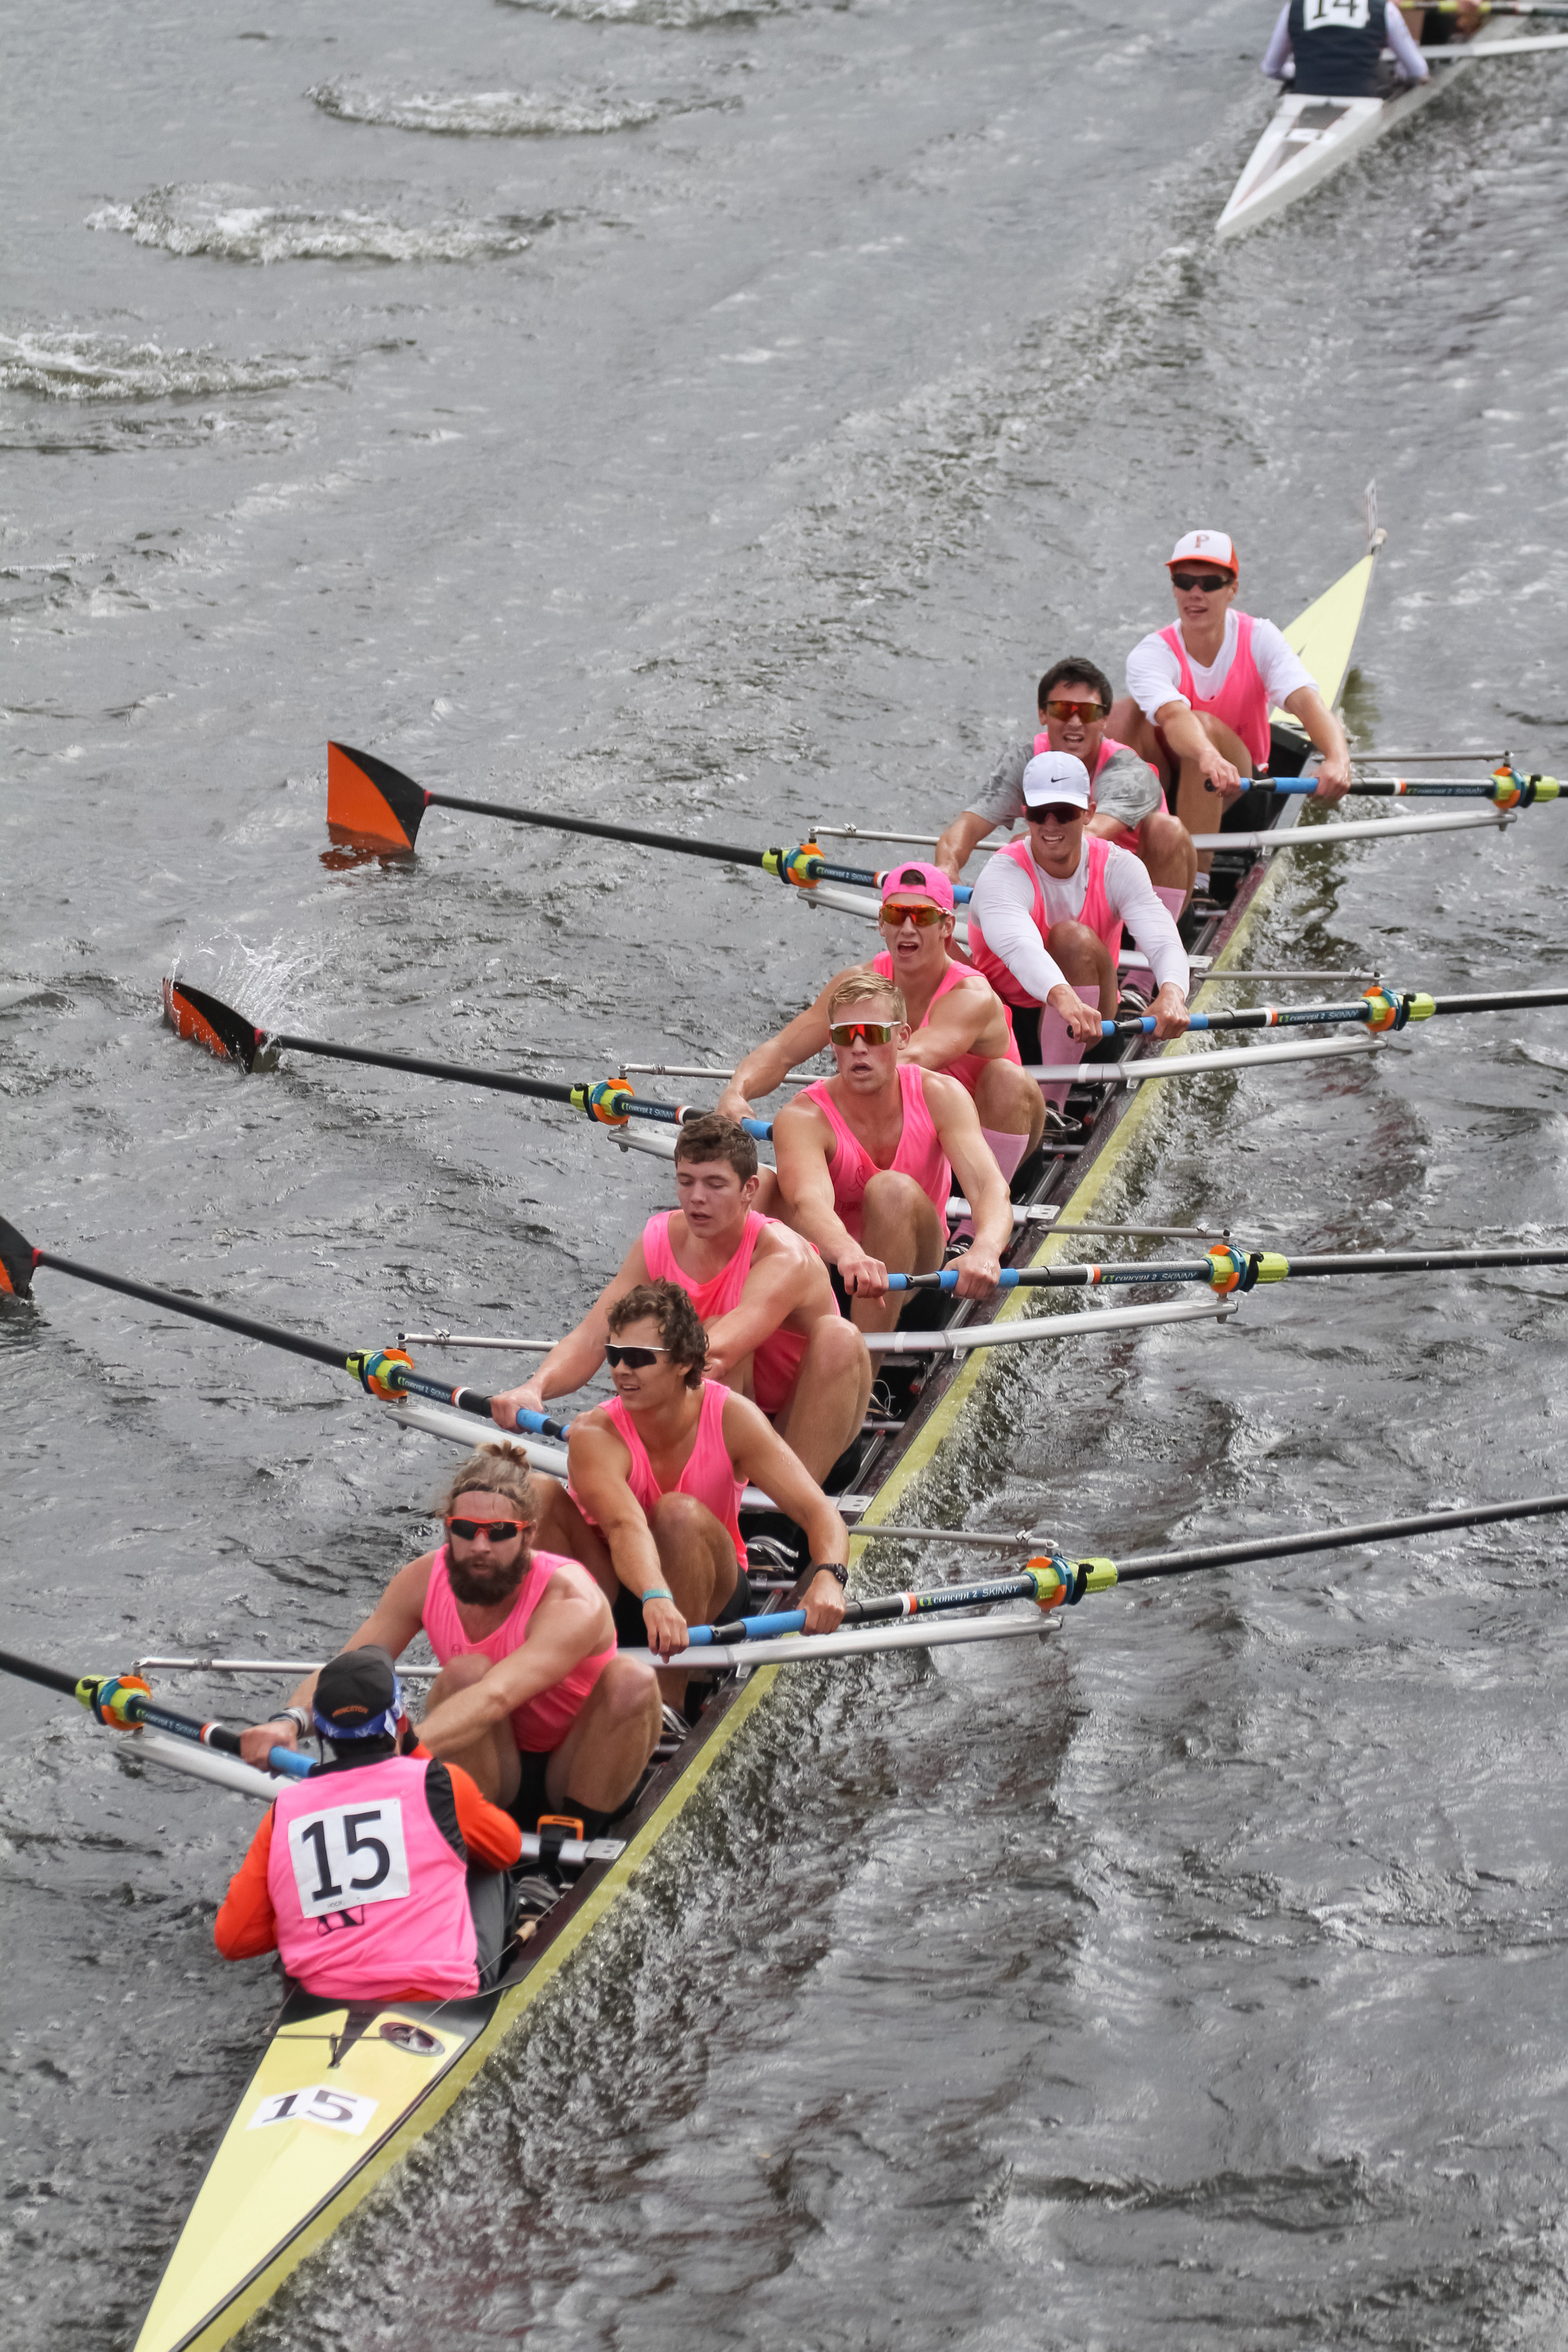 The Princeton heavyweight men chase down Bow #14, California Rowing Club